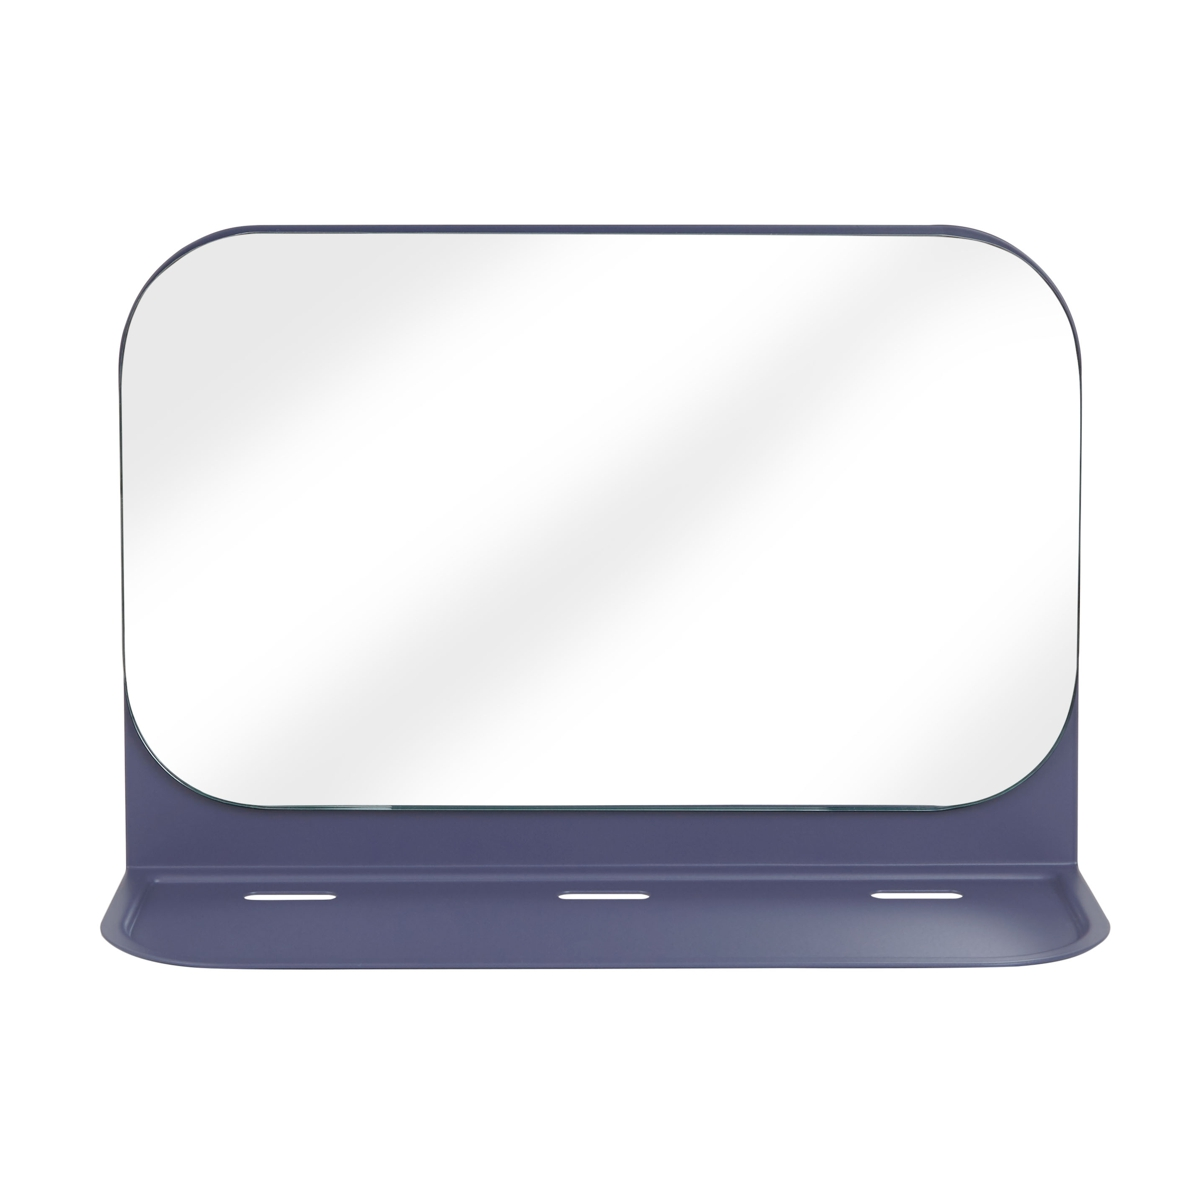 Umbra Pose Wall Shelf and Mirror Indigo L33.8 x W11.4 x H22.9cm